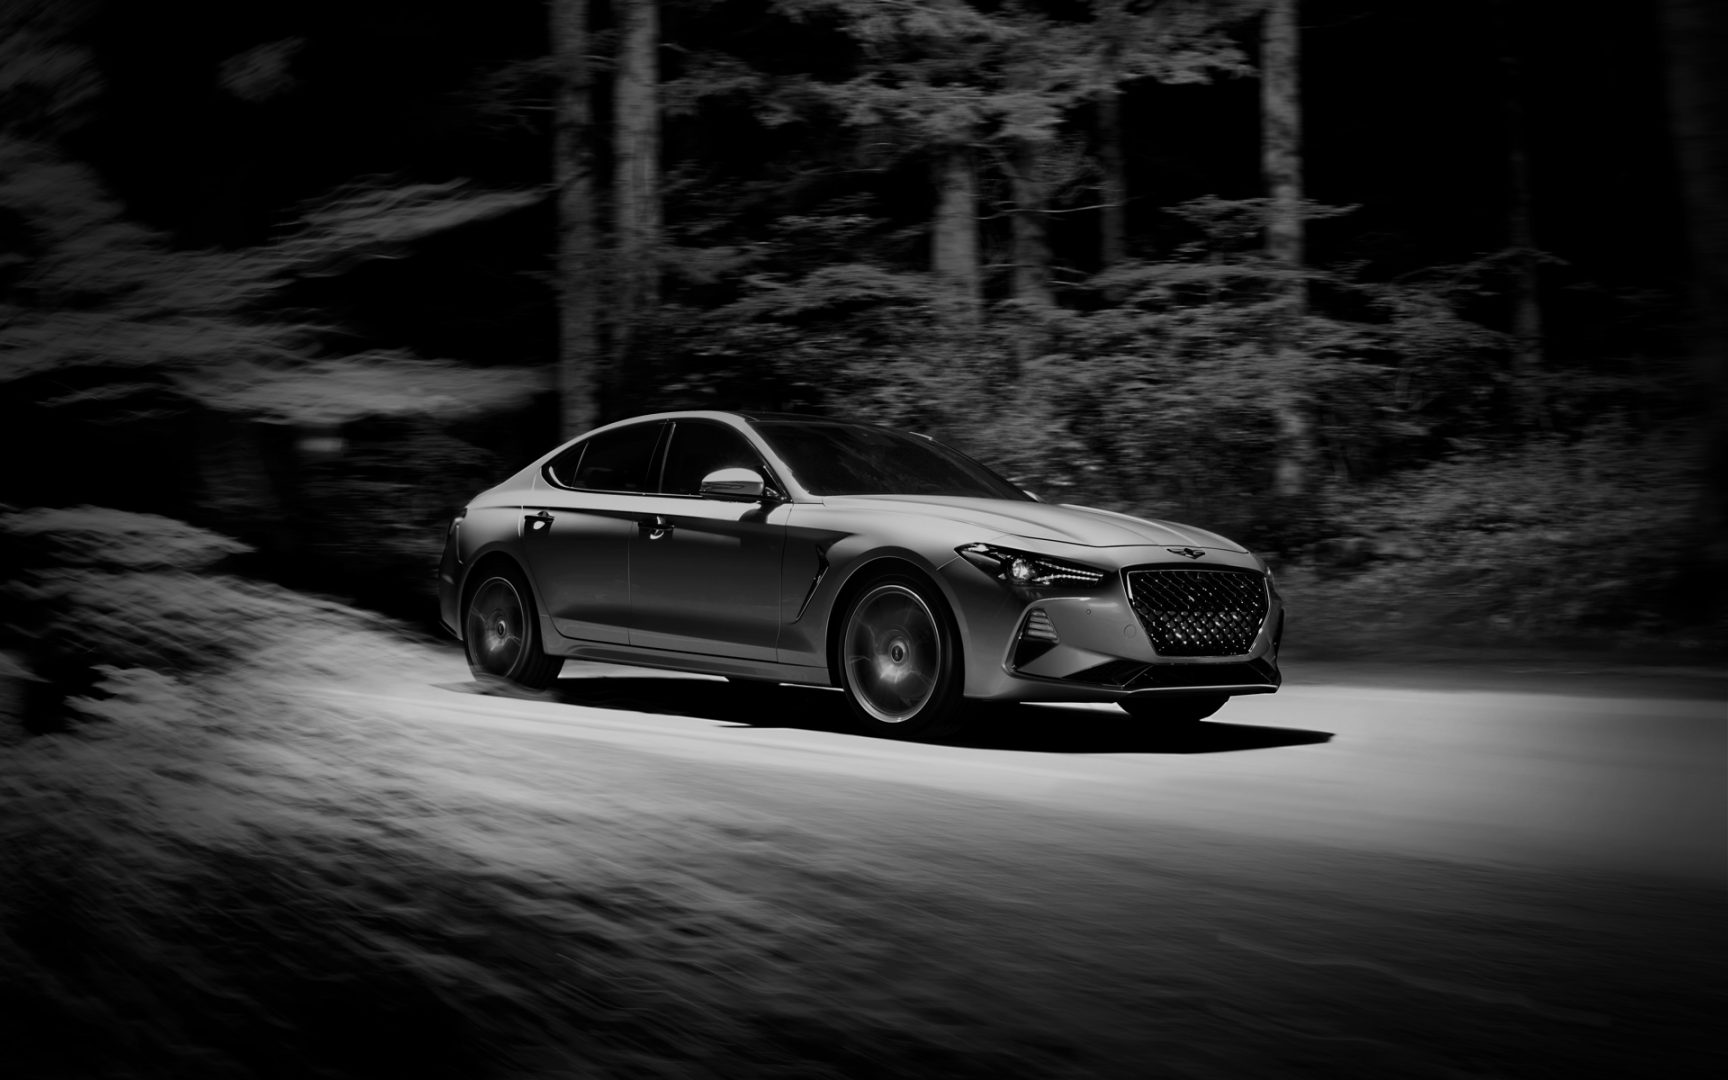 genesis-g70-highlights-kv-04